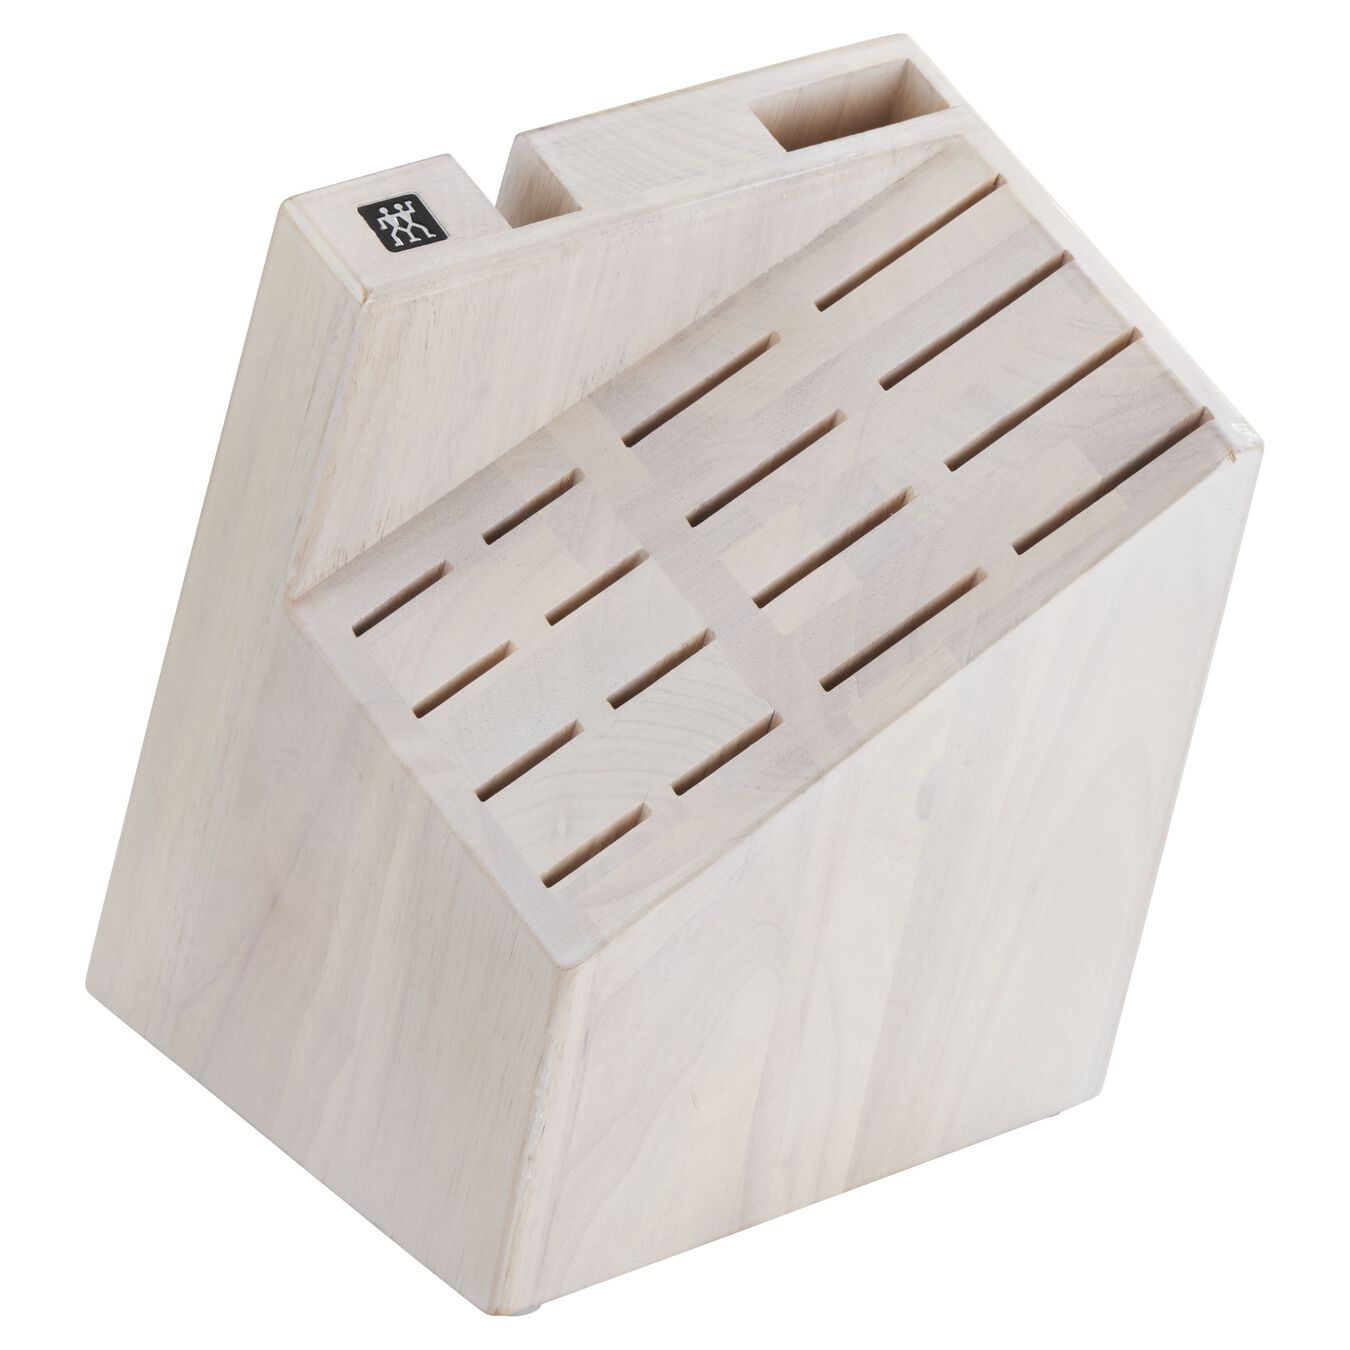 Special Formula Steel, Knife block empty,,large 2